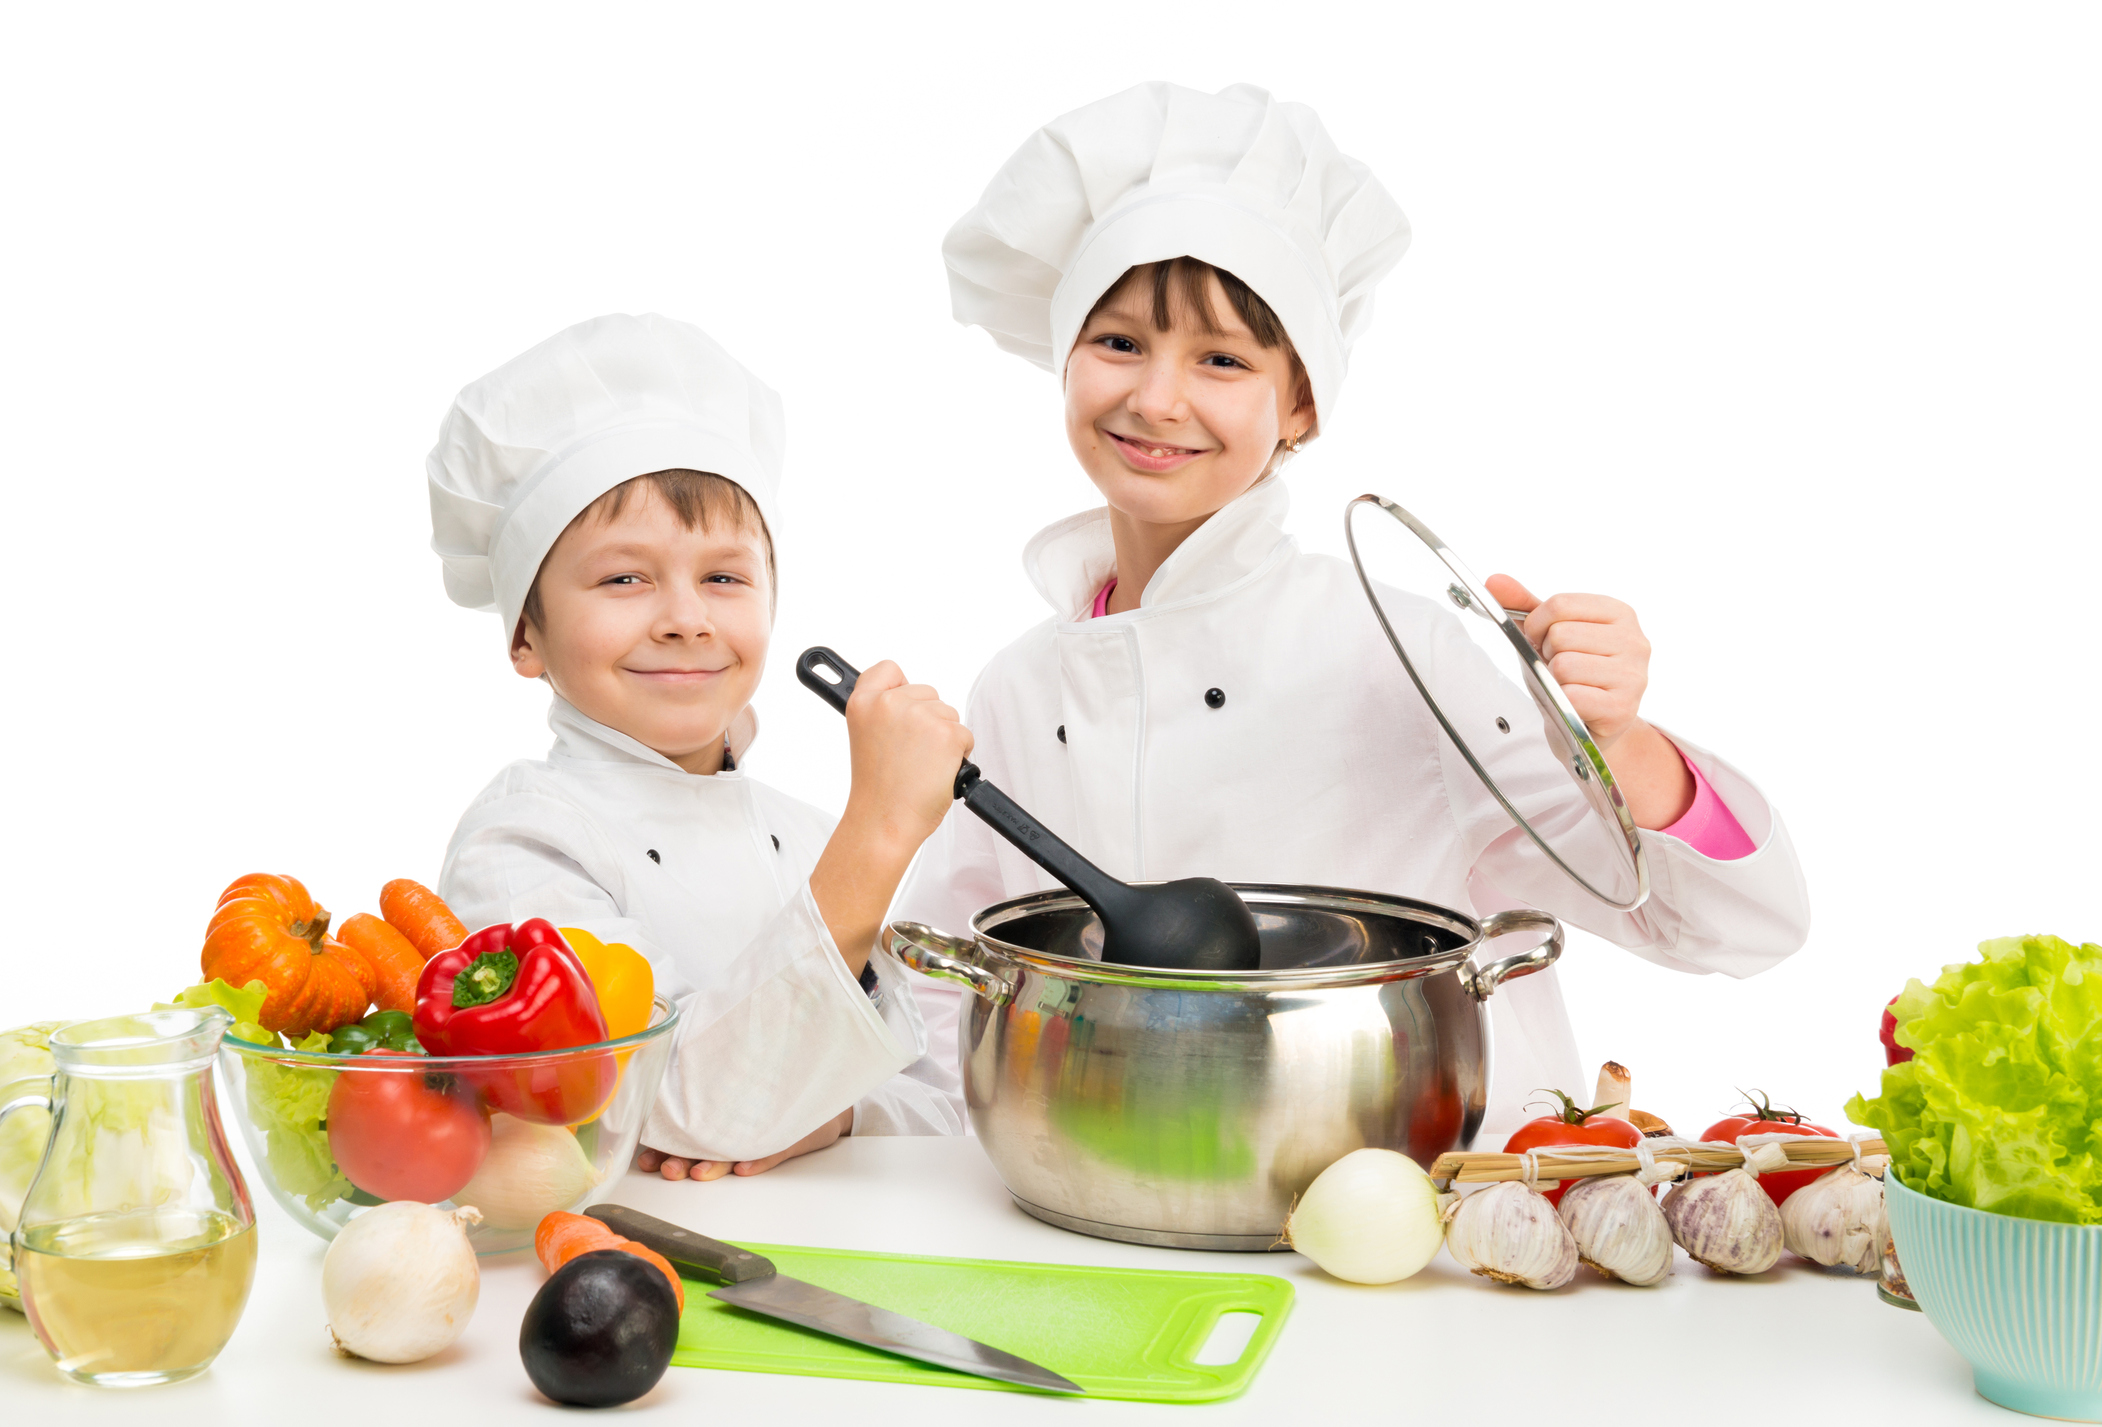 Healthy Cooking Classes 19/20 - Places are limited. Book Now!